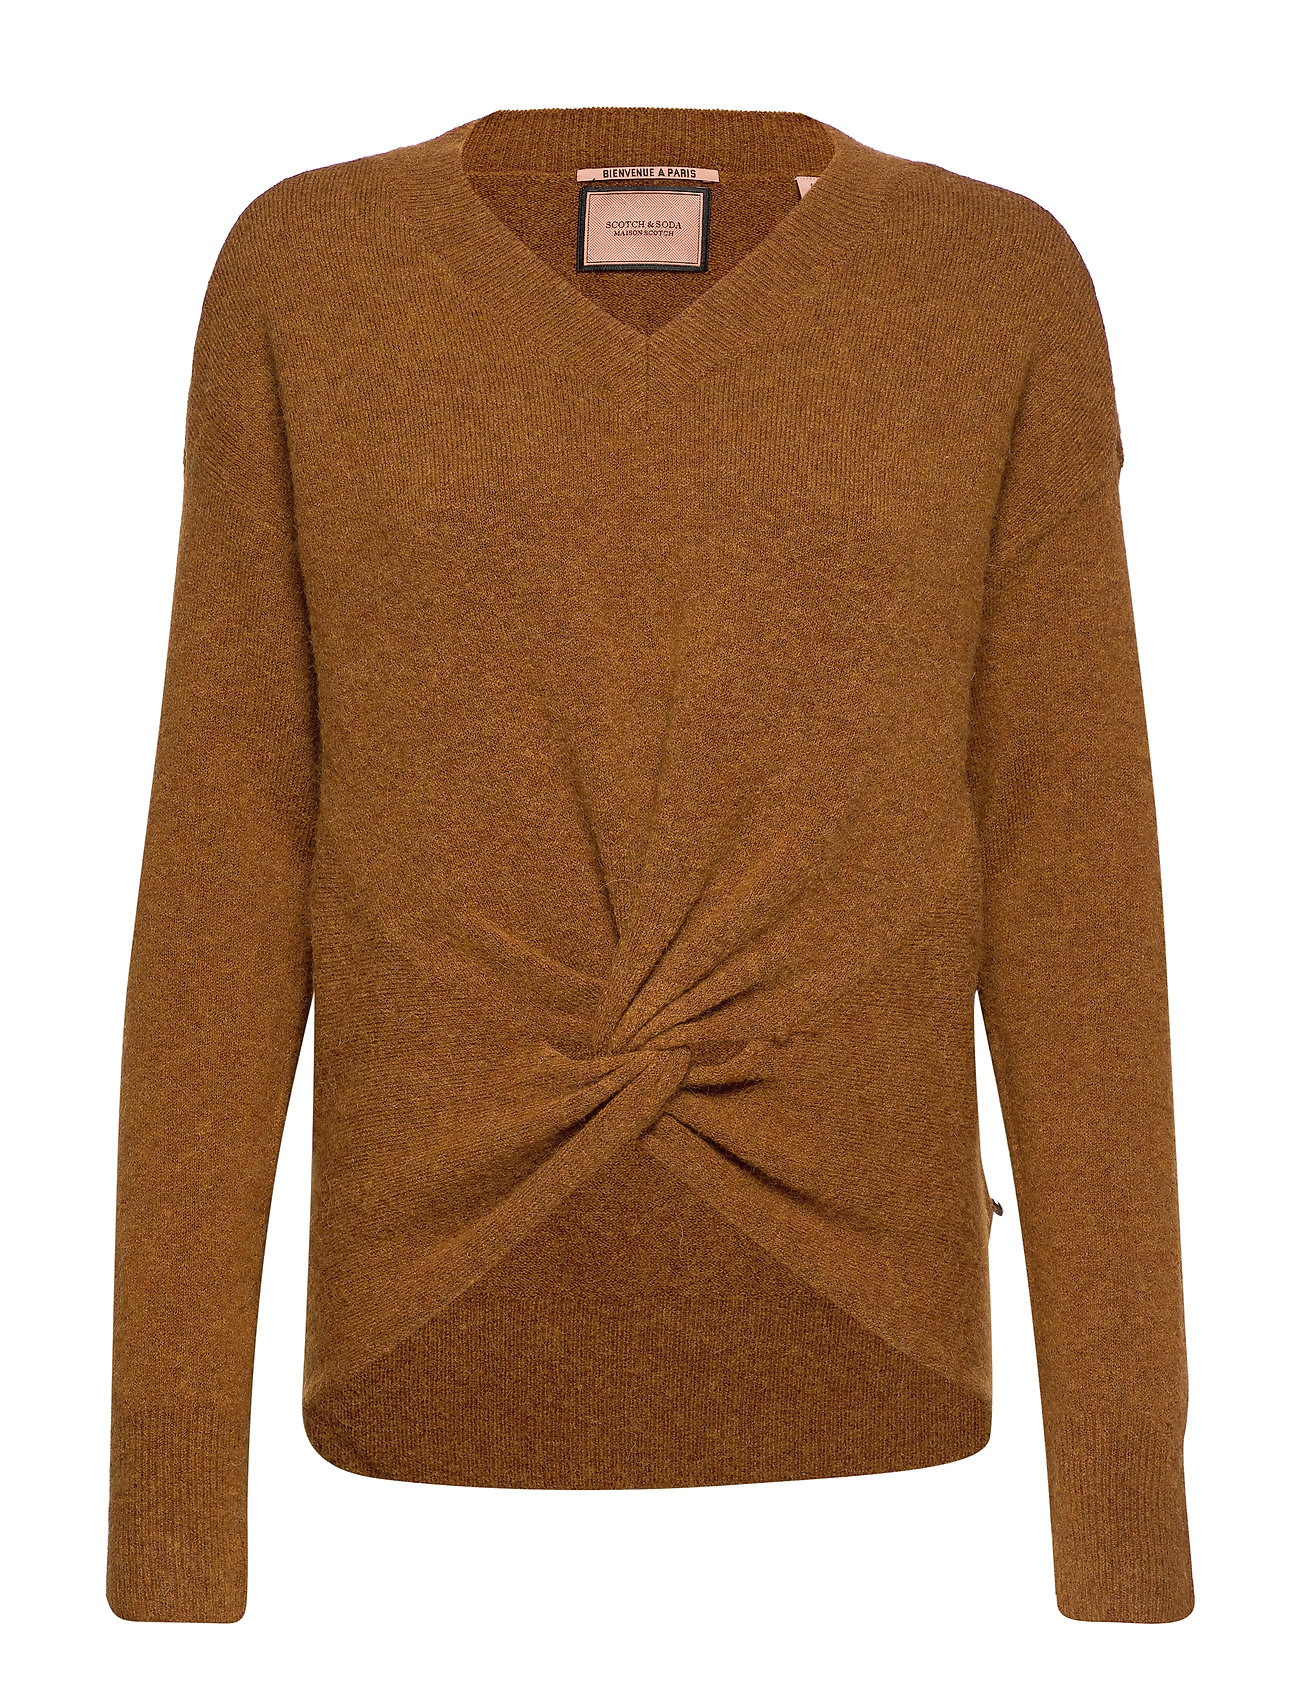 Scotch & Soda Crewneck knit with knot detail at hem - CAMEL MELANGE